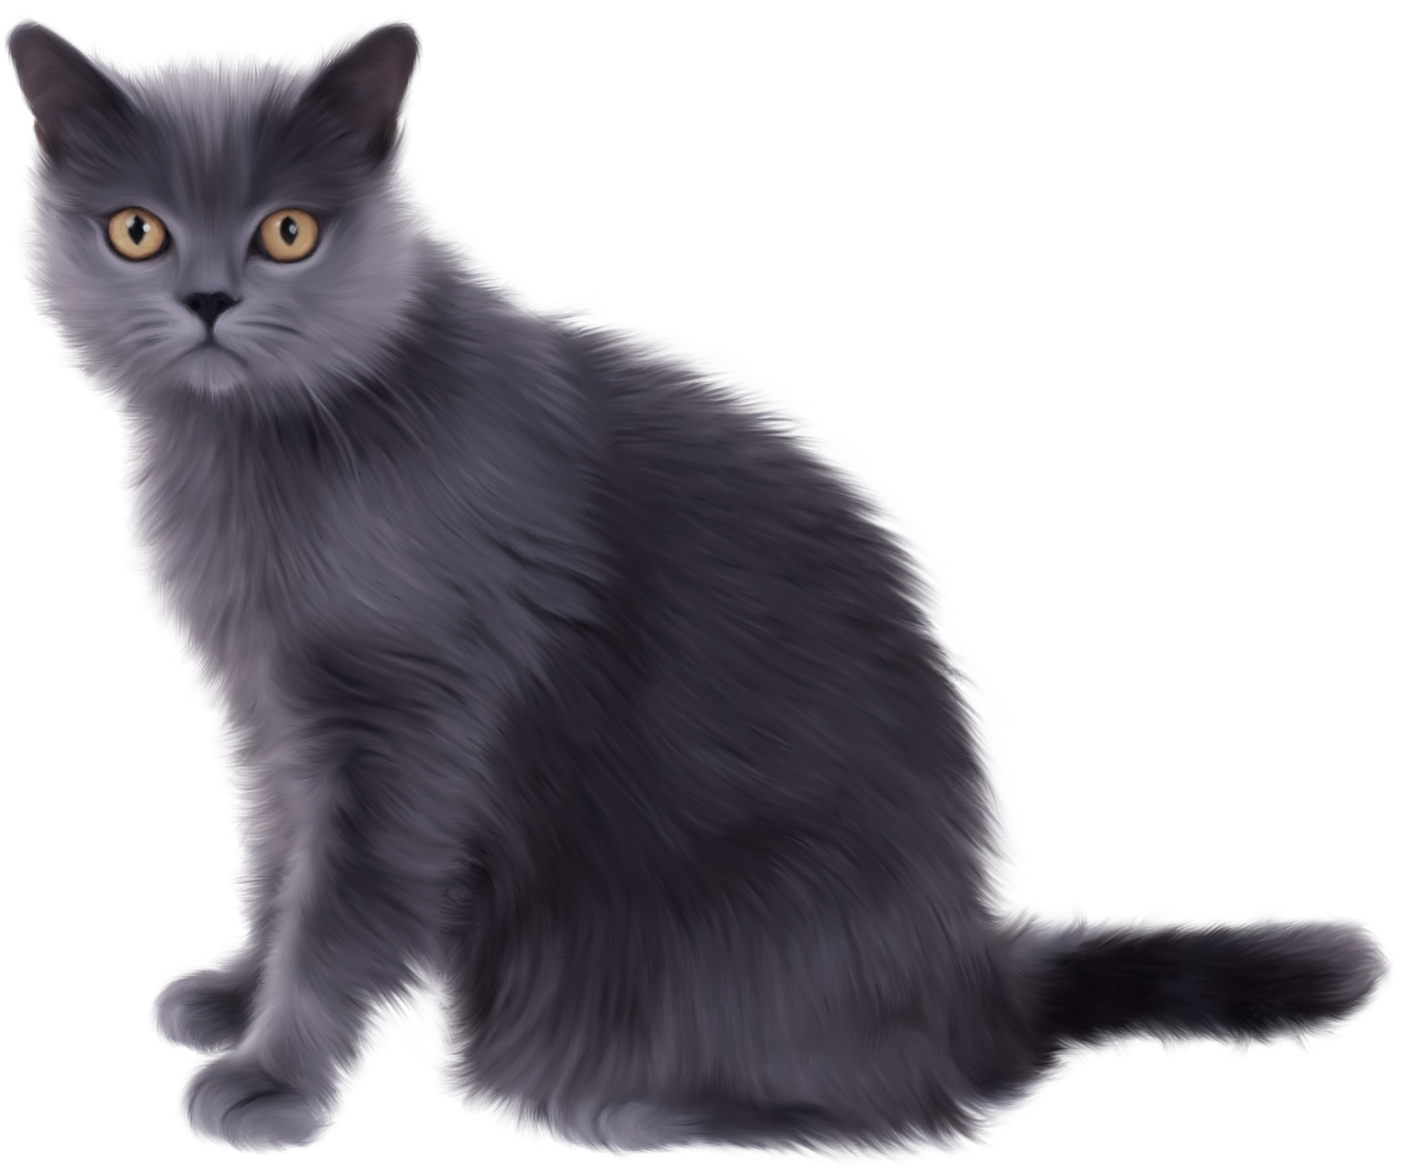 Sitting black cat clipart picture freeuse Black Sitting Cat PNG Image - PurePNG | Free transparent CC0 PNG ... picture freeuse